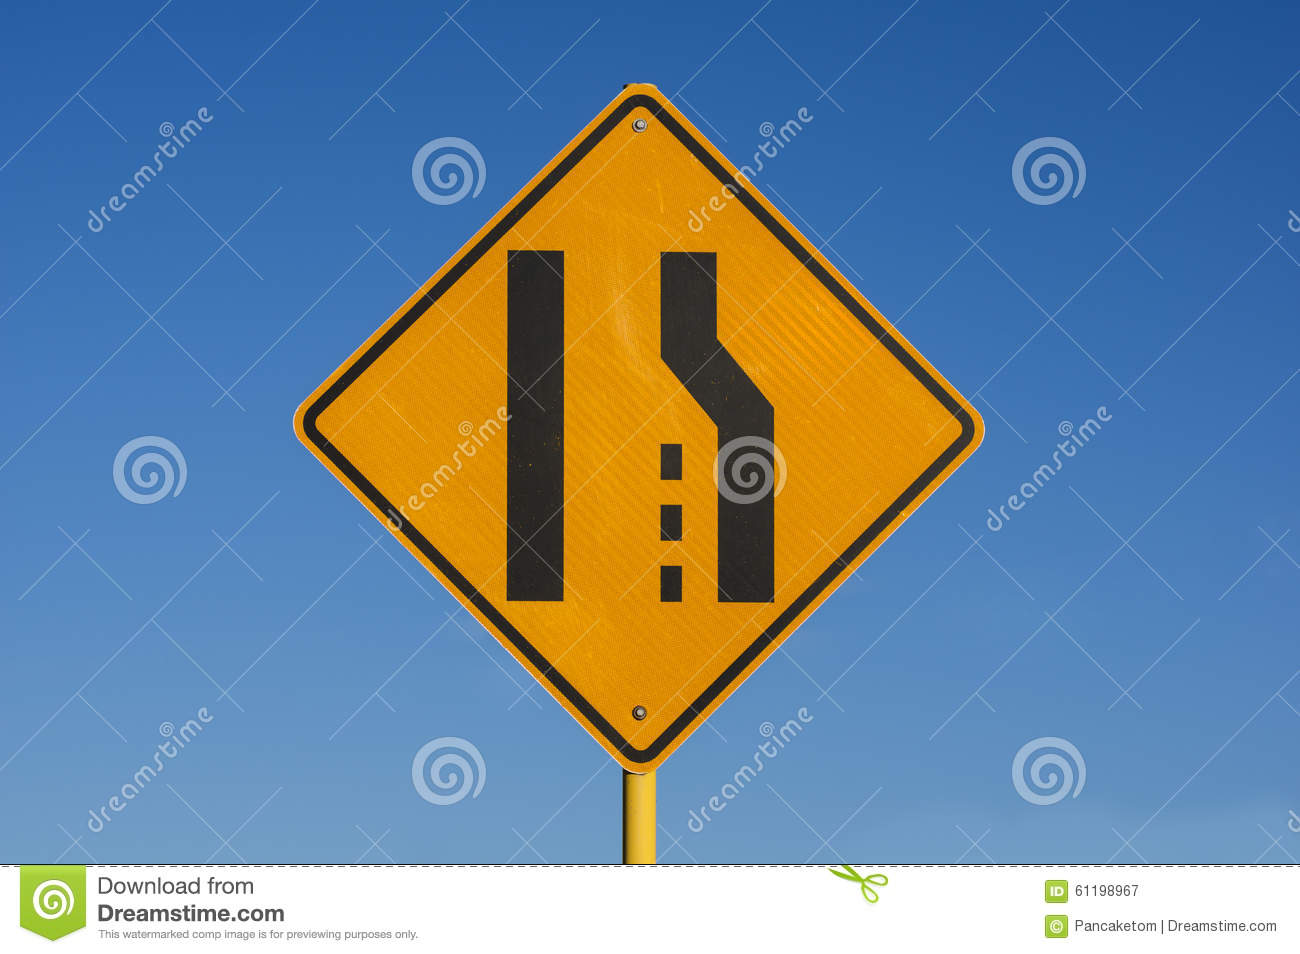 right lane ends sign stock photo image 61198967